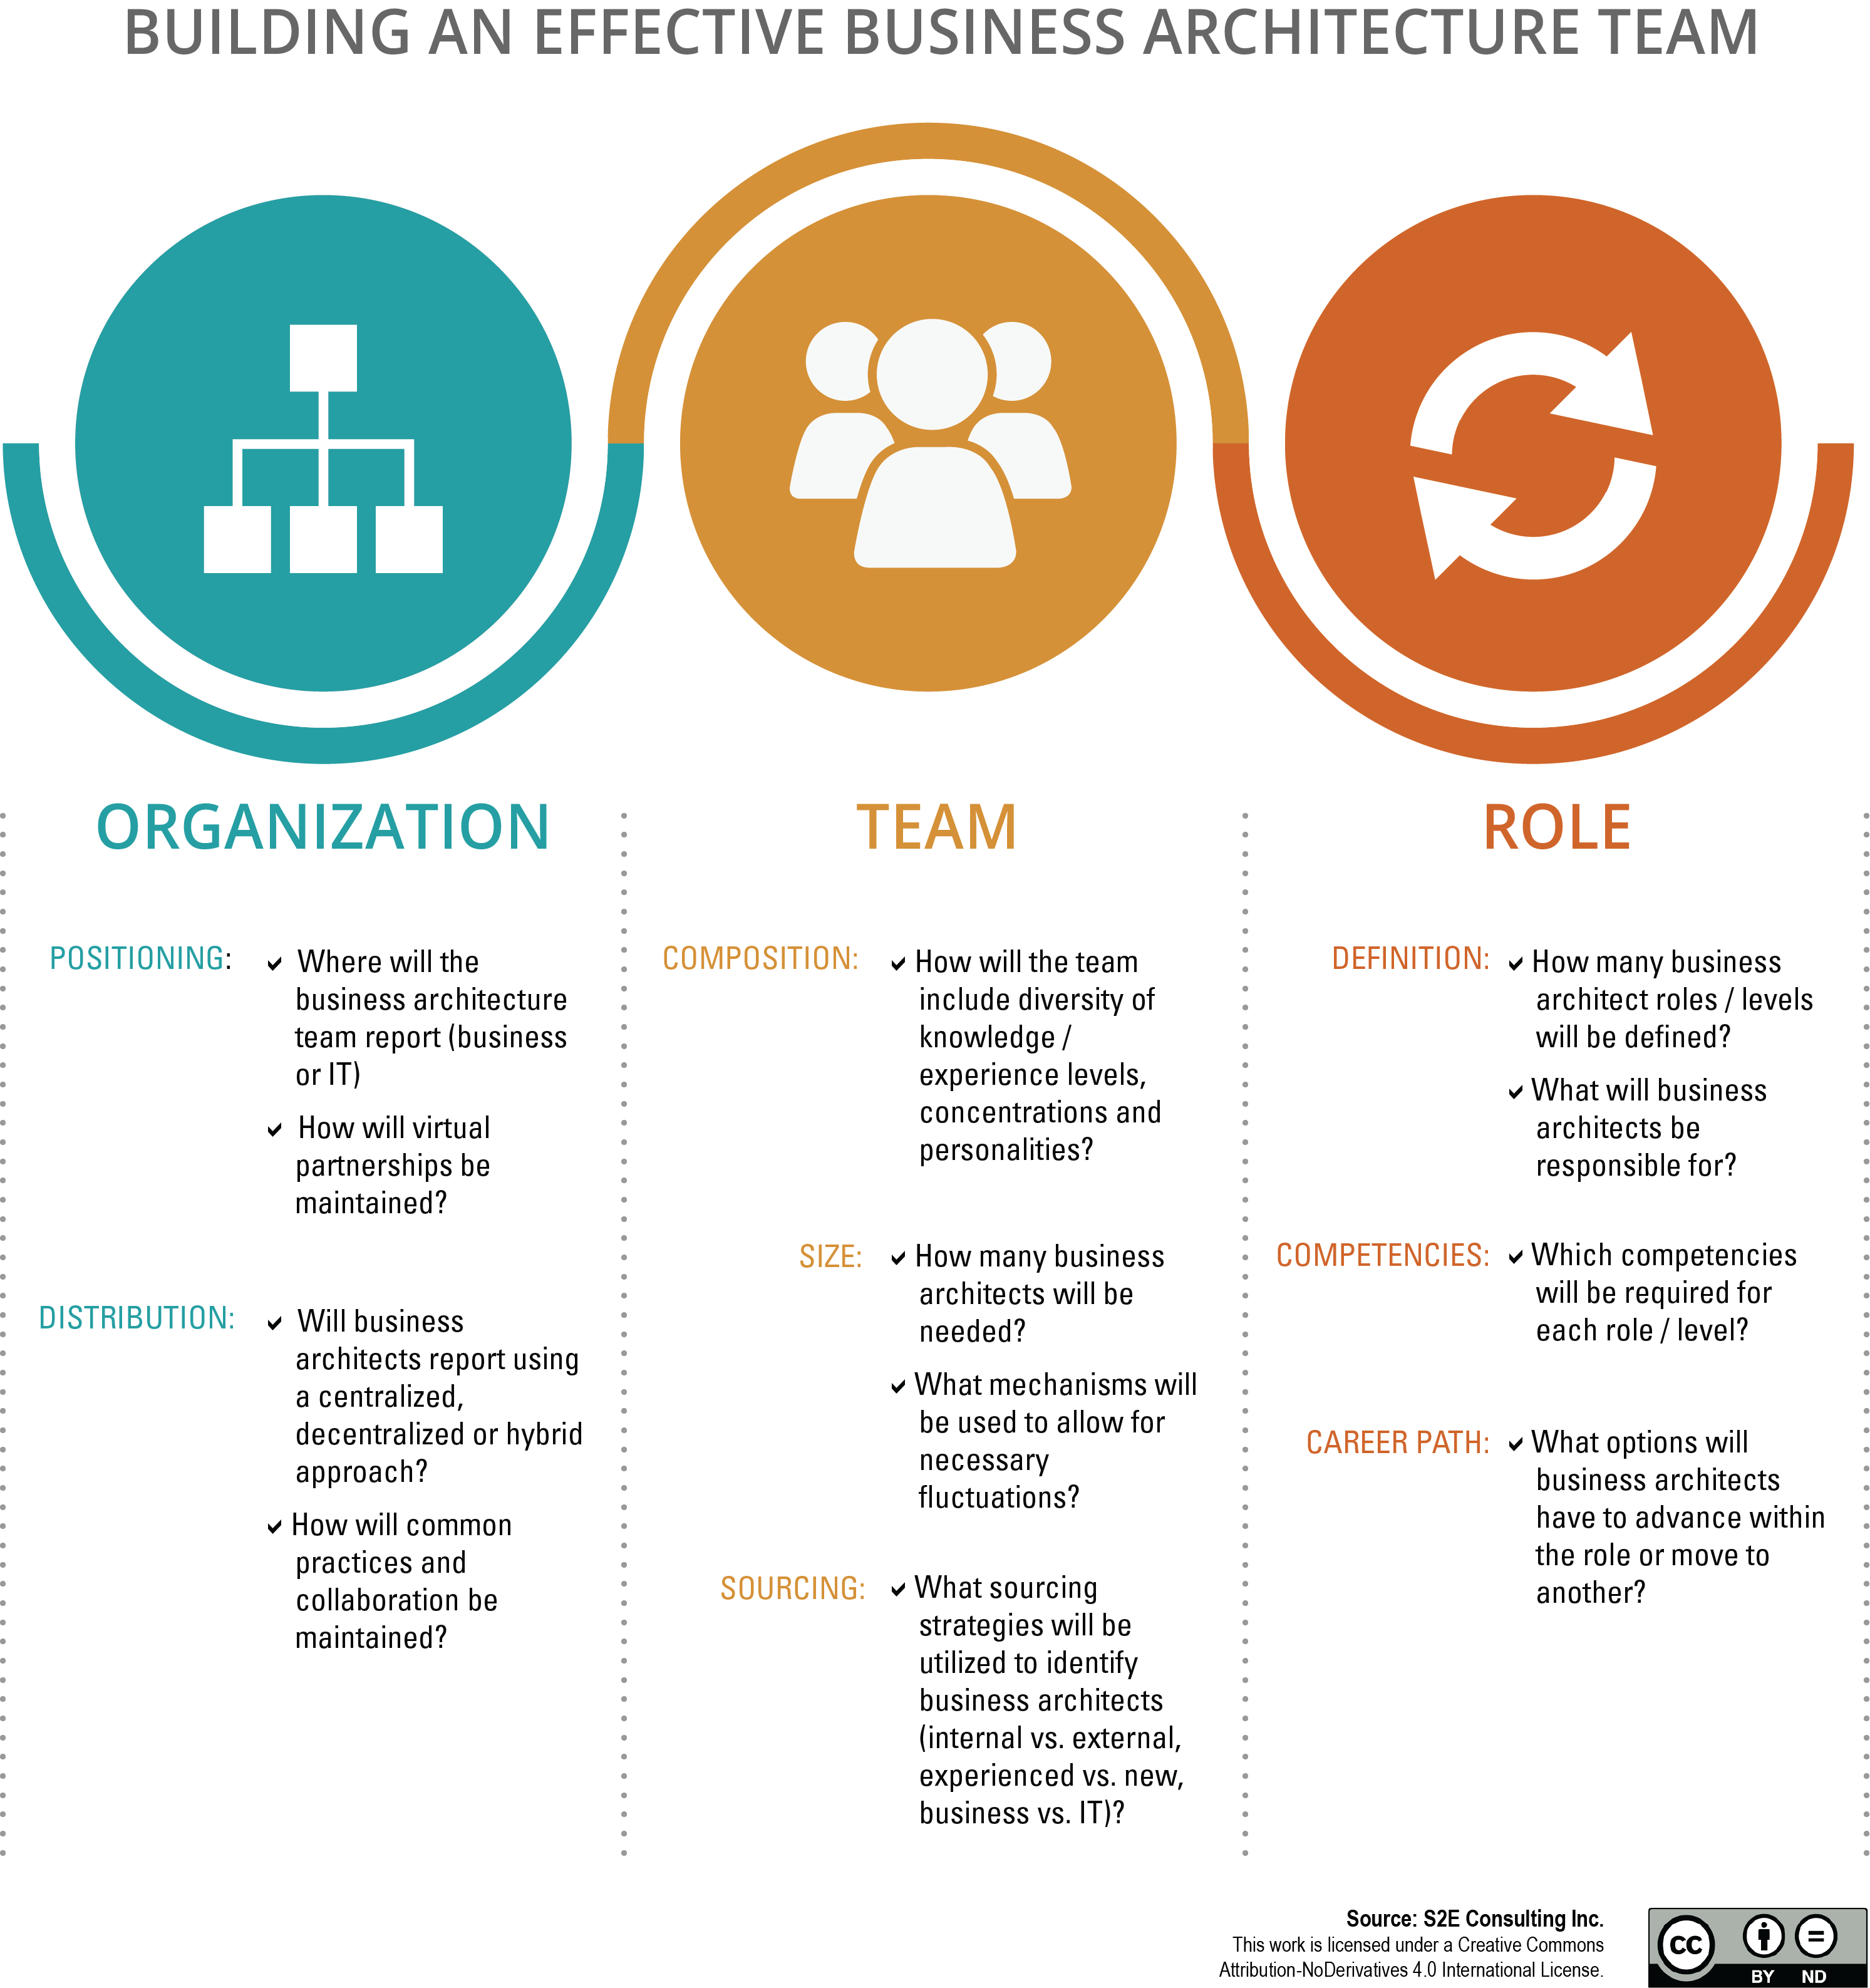 Building an Effective Business Architecture Team